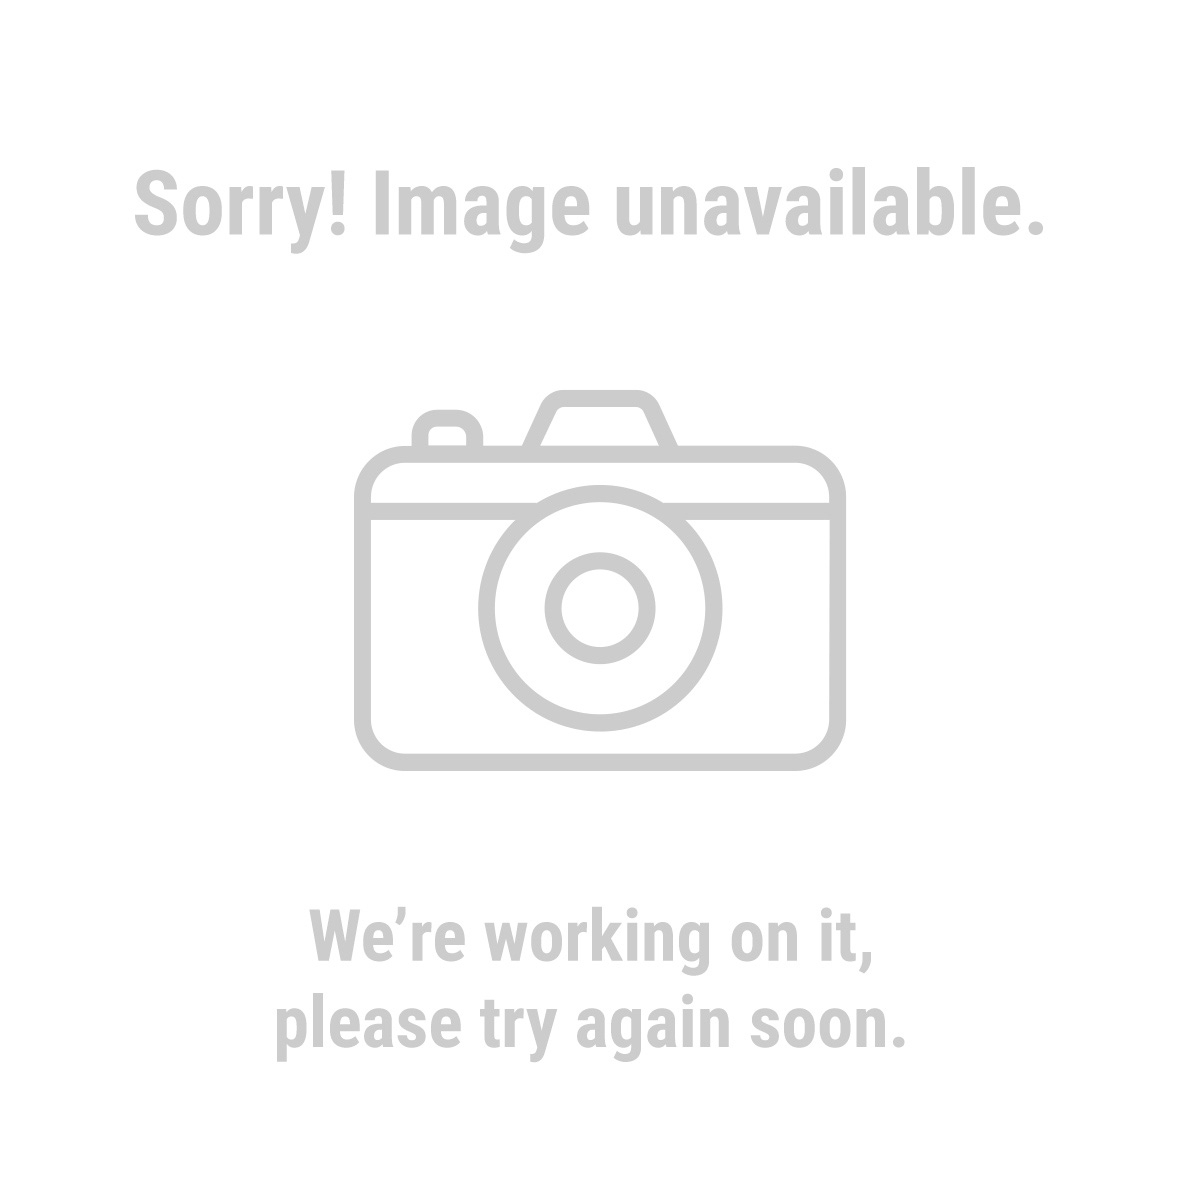 Pittsburgh® 62464 12 ft. x 1/2 in. QuikFind Tape Measure with ABS Casing